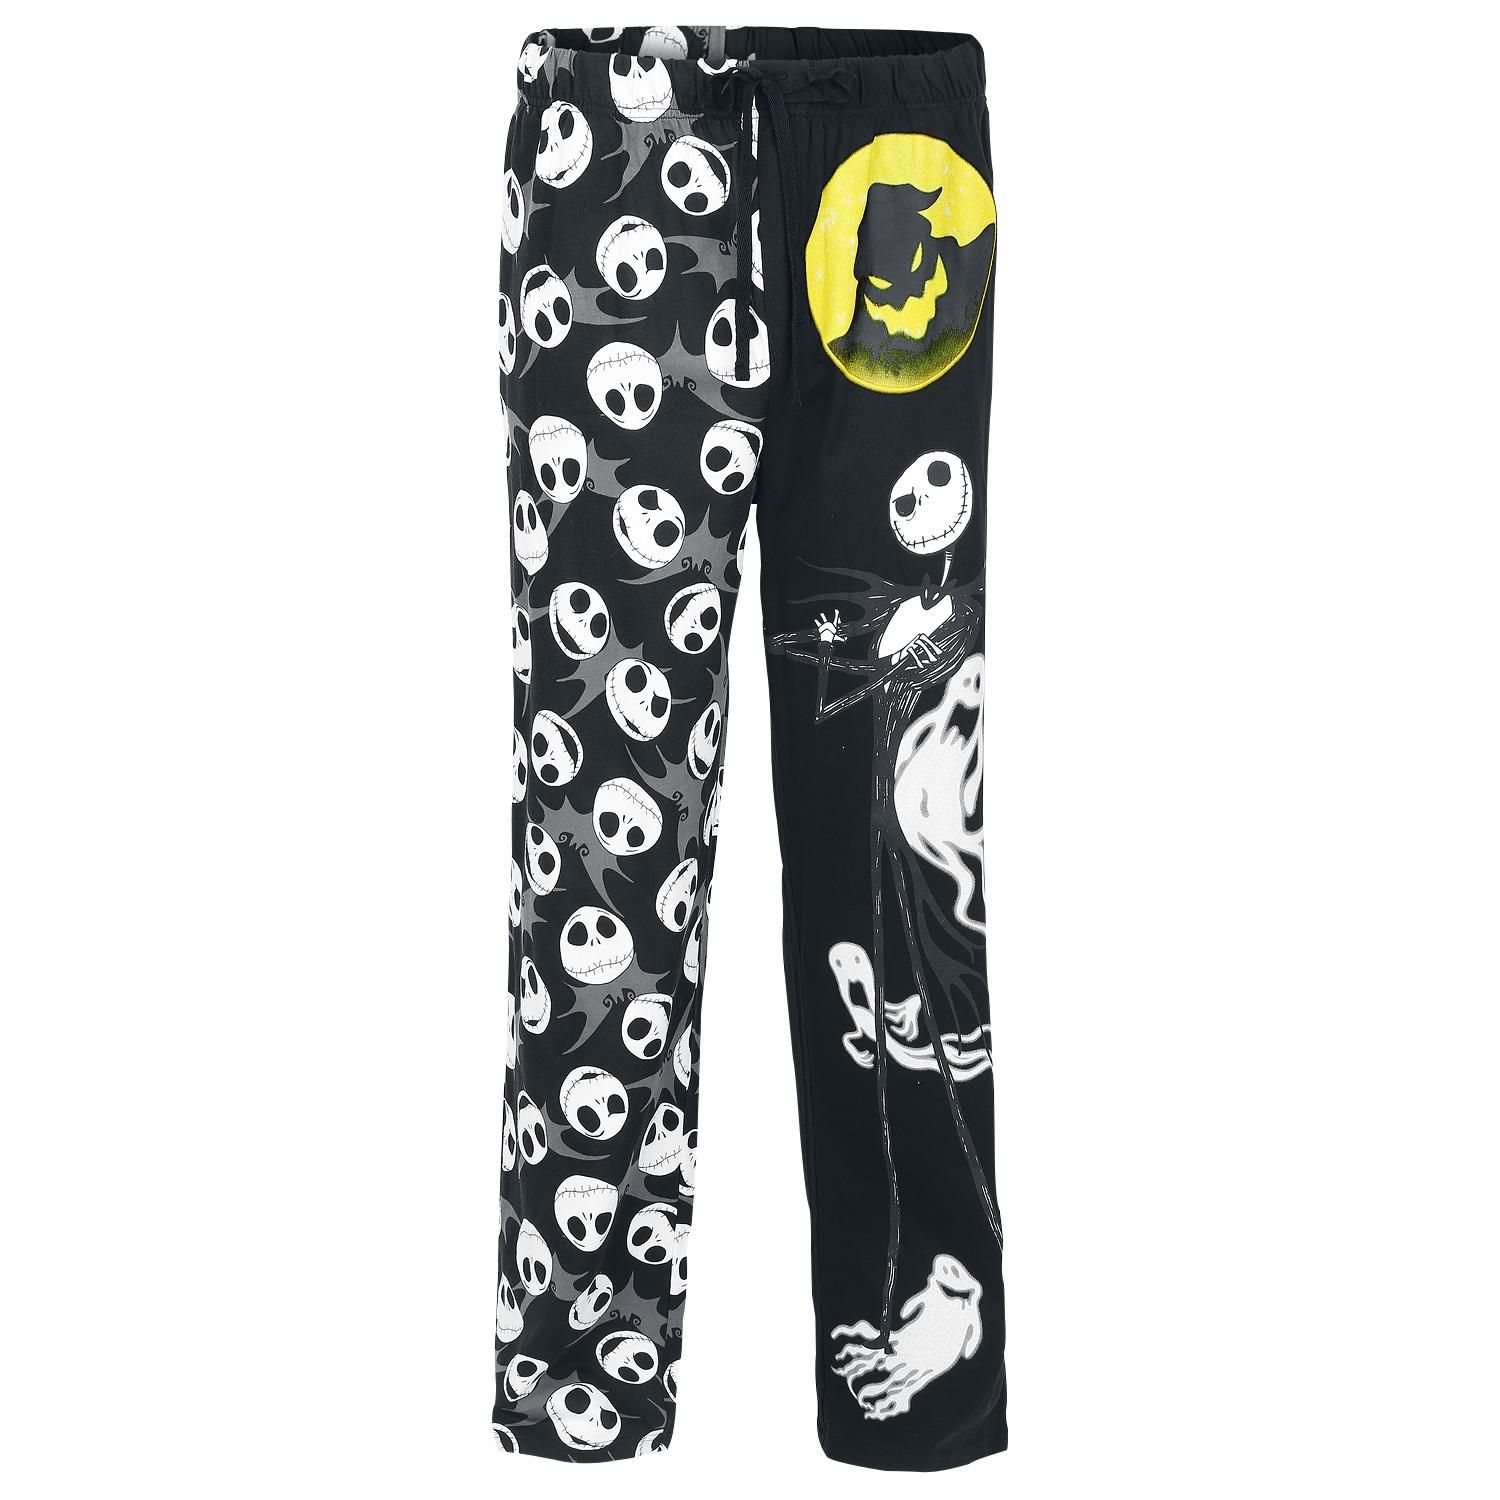 Jack & Ghost - Pyjama Pants by The Nightmare Before Christmas | the ...